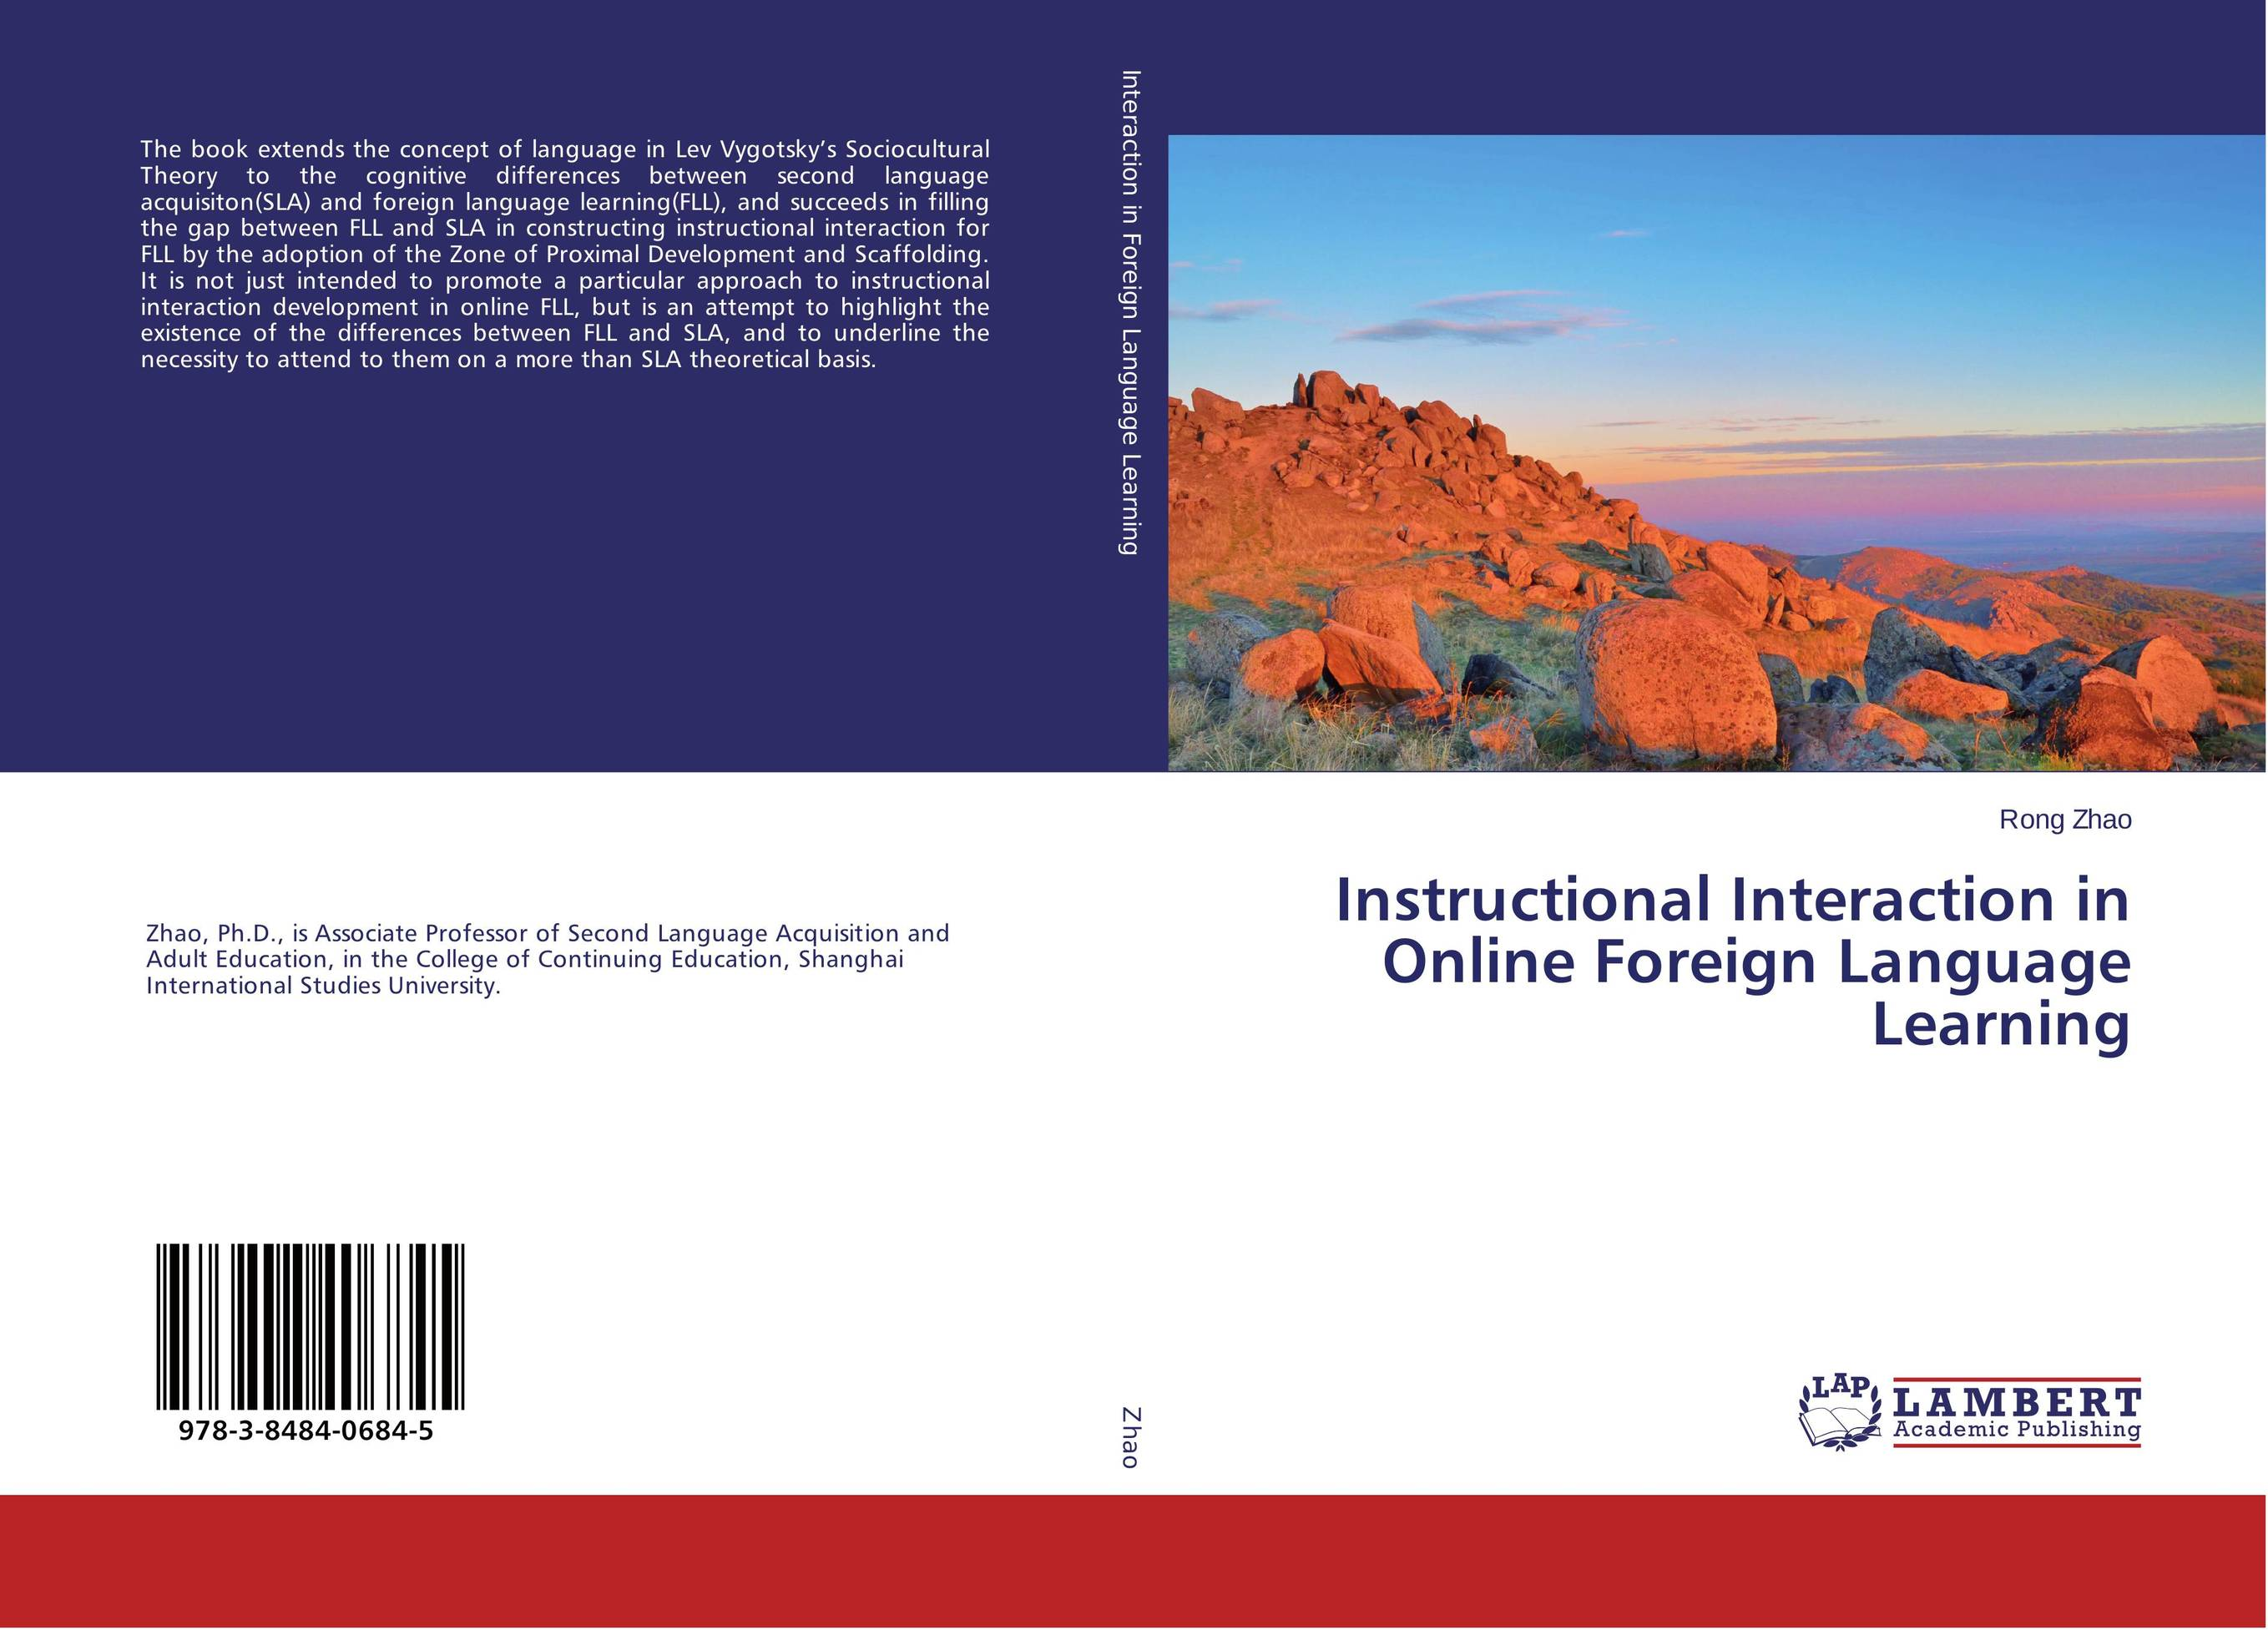 Instructional Interaction in Online Foreign Language Learning gap ga020fgsyk28 gap